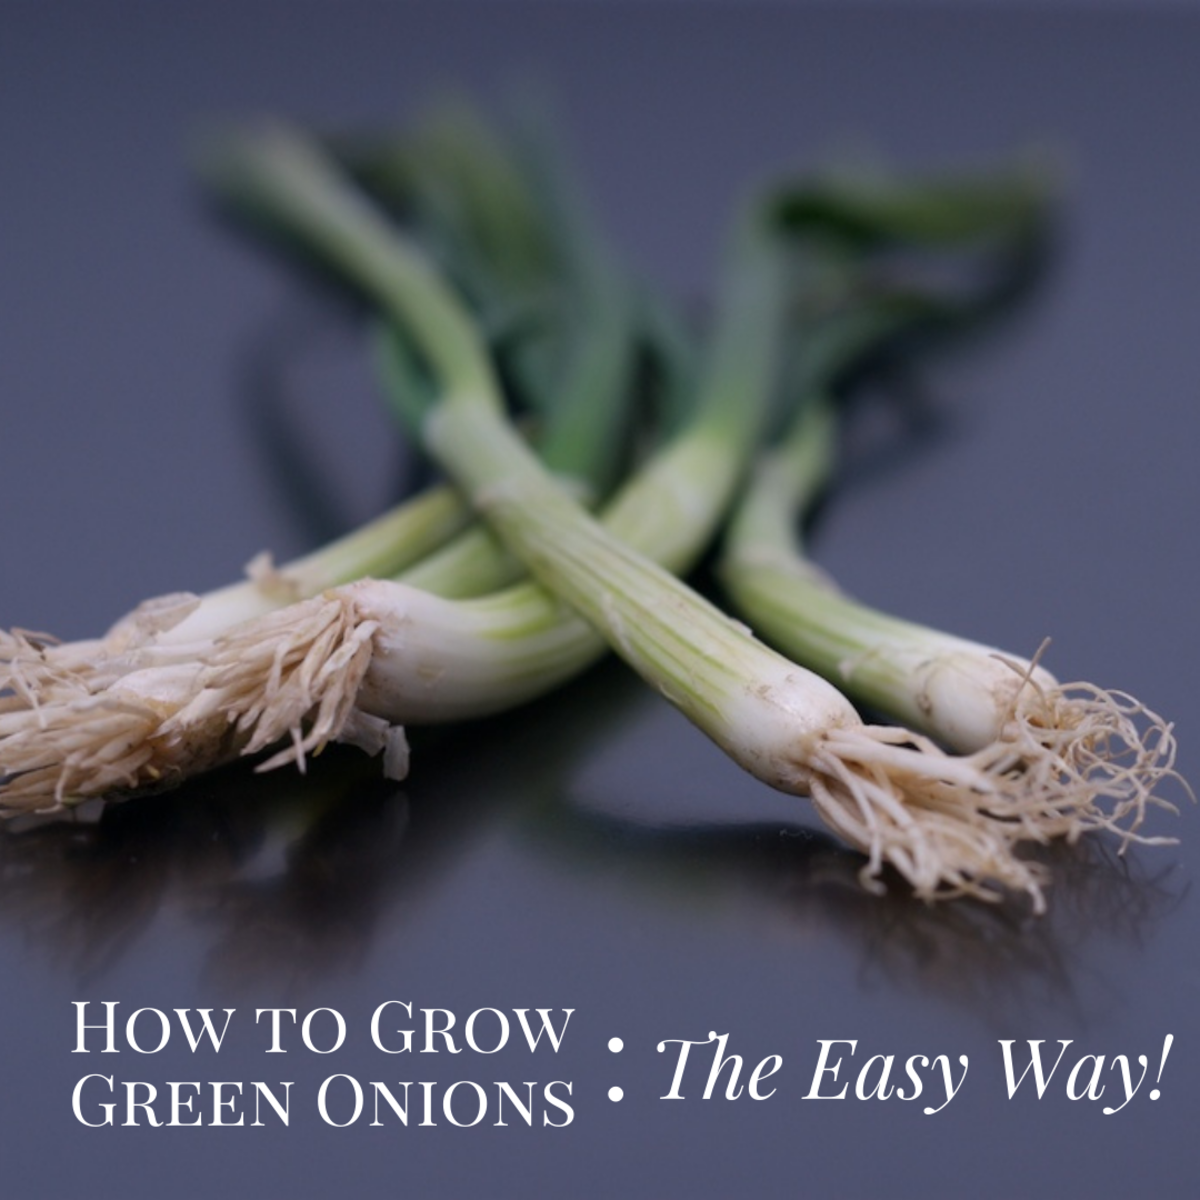 This article will show you the easy way to grow your own green onions.